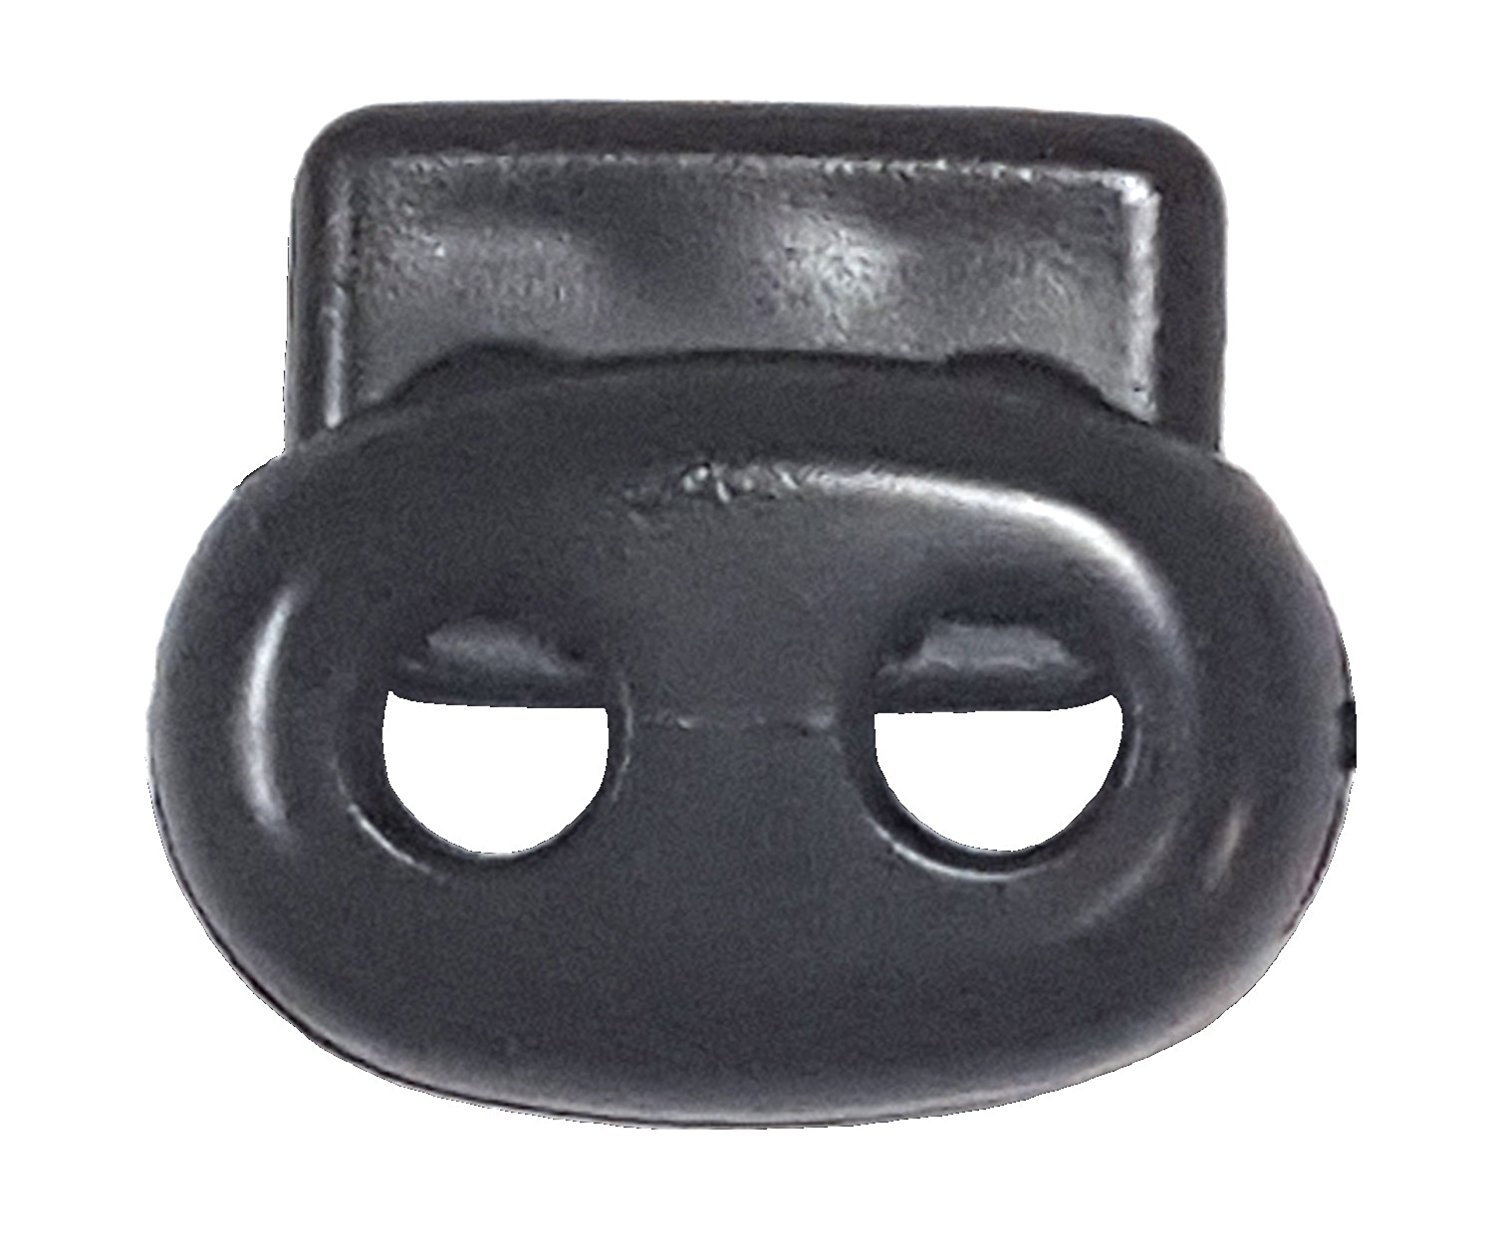 "Troy Tactical Black Pumpkin Spring Stop Cord Lock for 3/16"" Cordage"